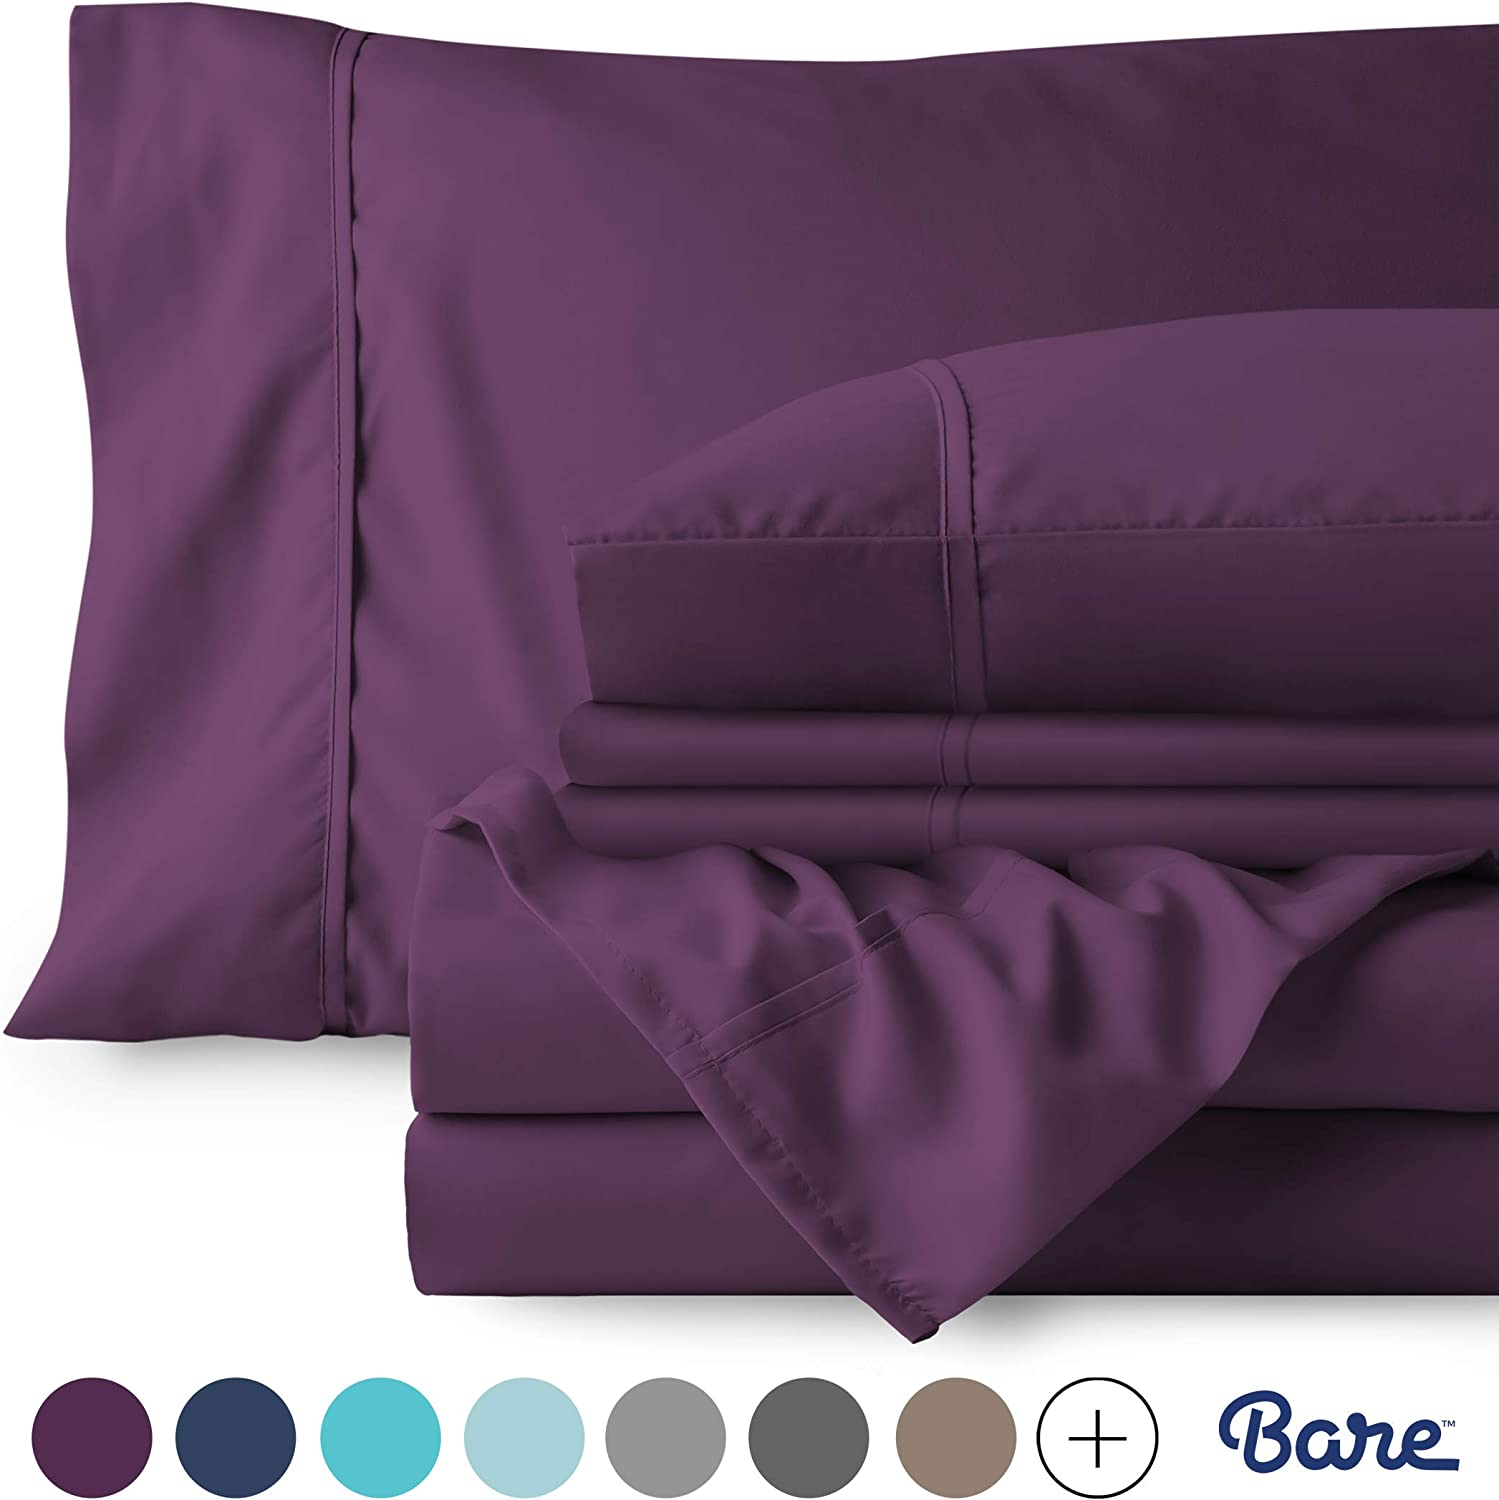 Bare Home 6 Piece 1800 Collection Deep Pocket Bed Sheet Set - Ultra-Soft Hypoallergenic - 2 Extra Pillowcases (Queen, Plum)